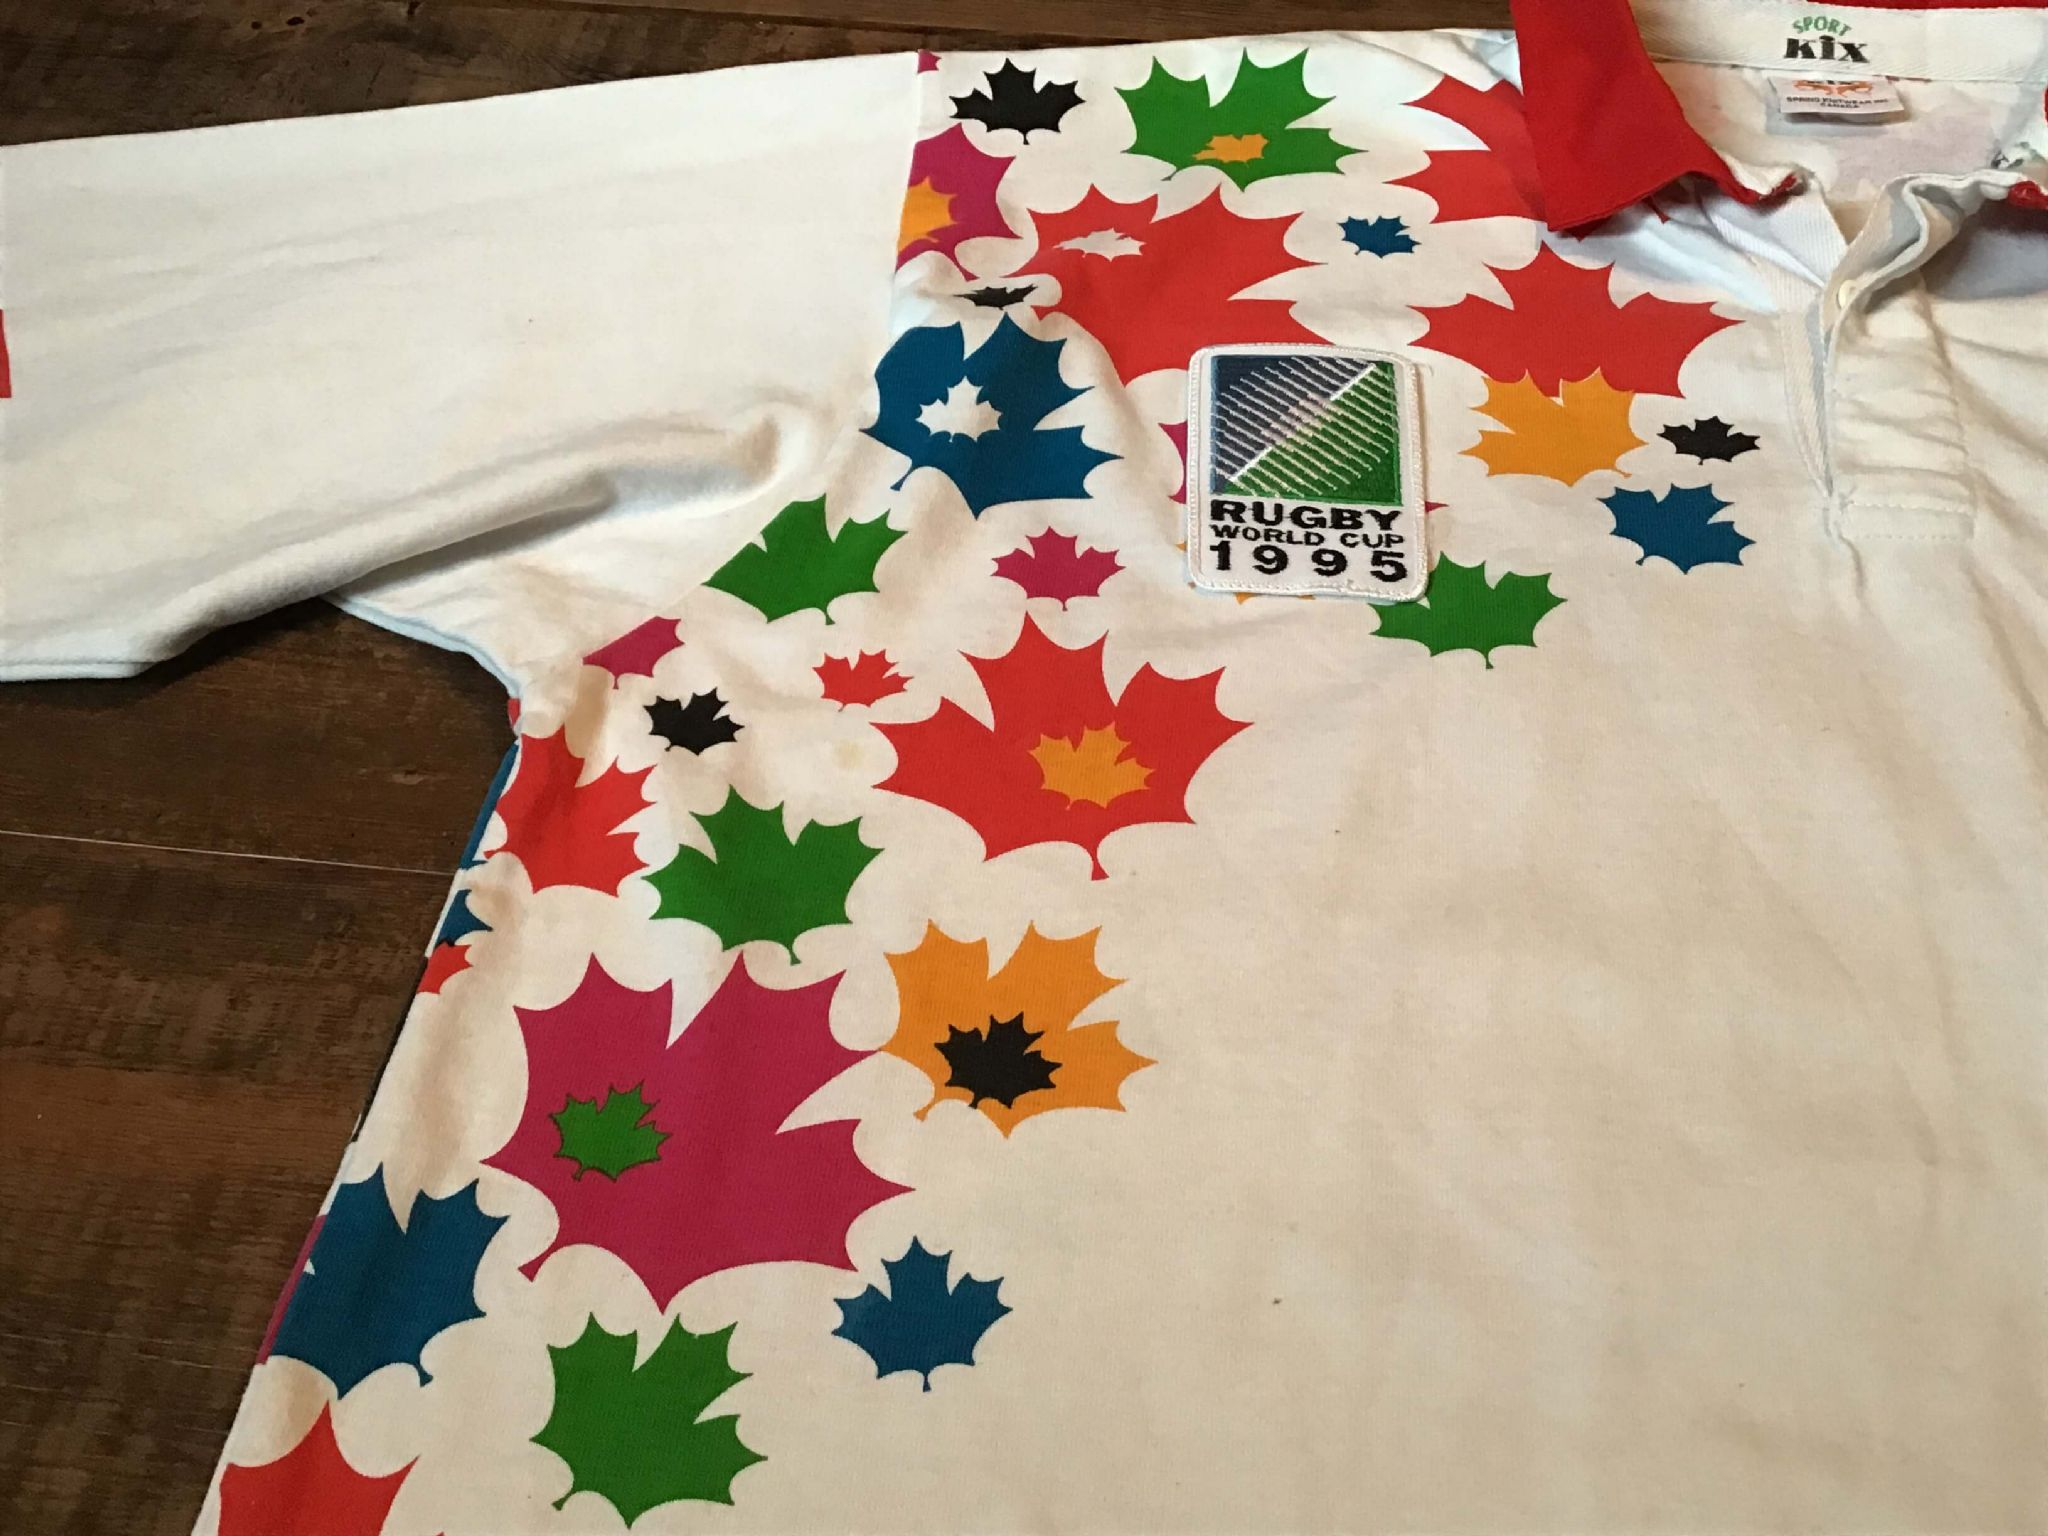 e85484f692c Classic Rugby Shirts | 1995 Canada Old Vintage Jerseys